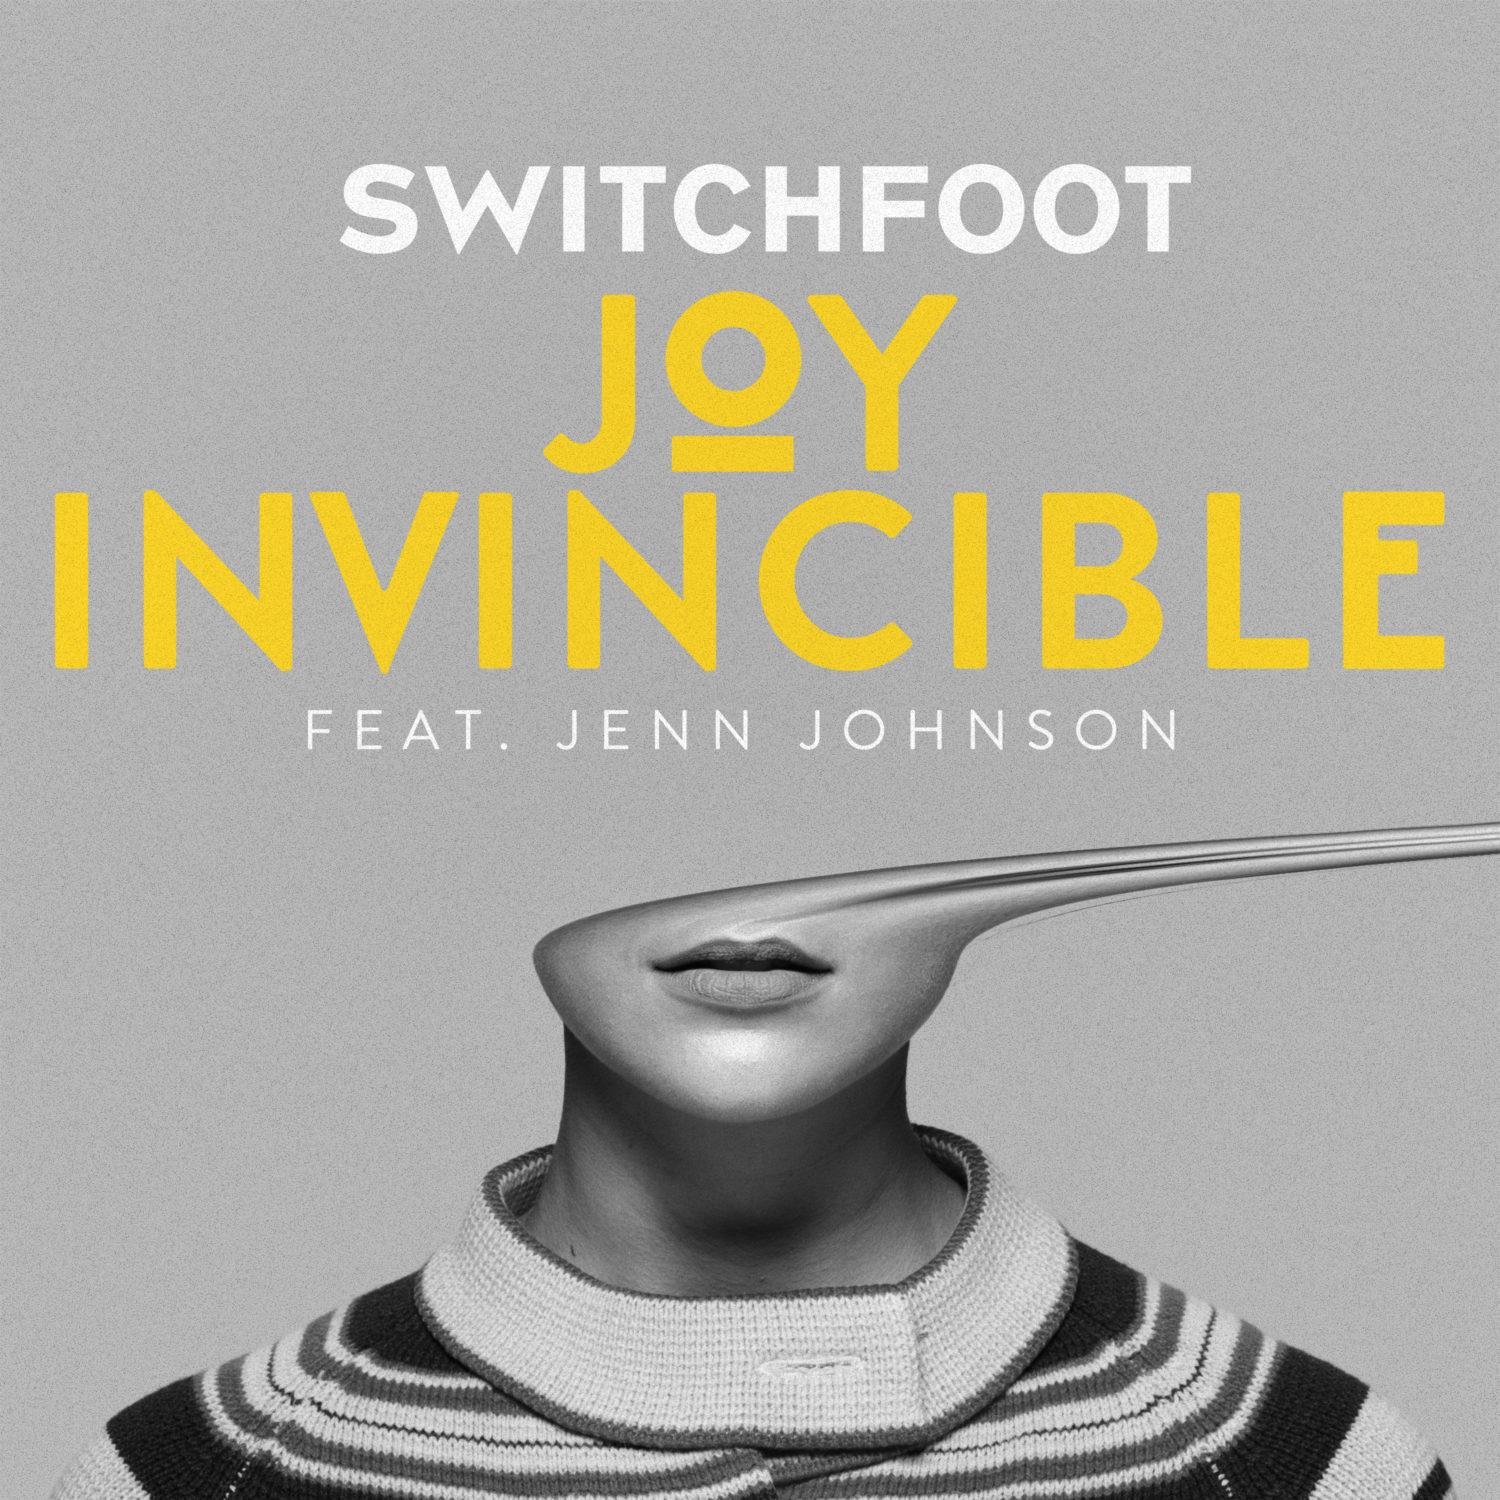 JOY INVINCIBLE (feat. Jenn Johnson) - Single